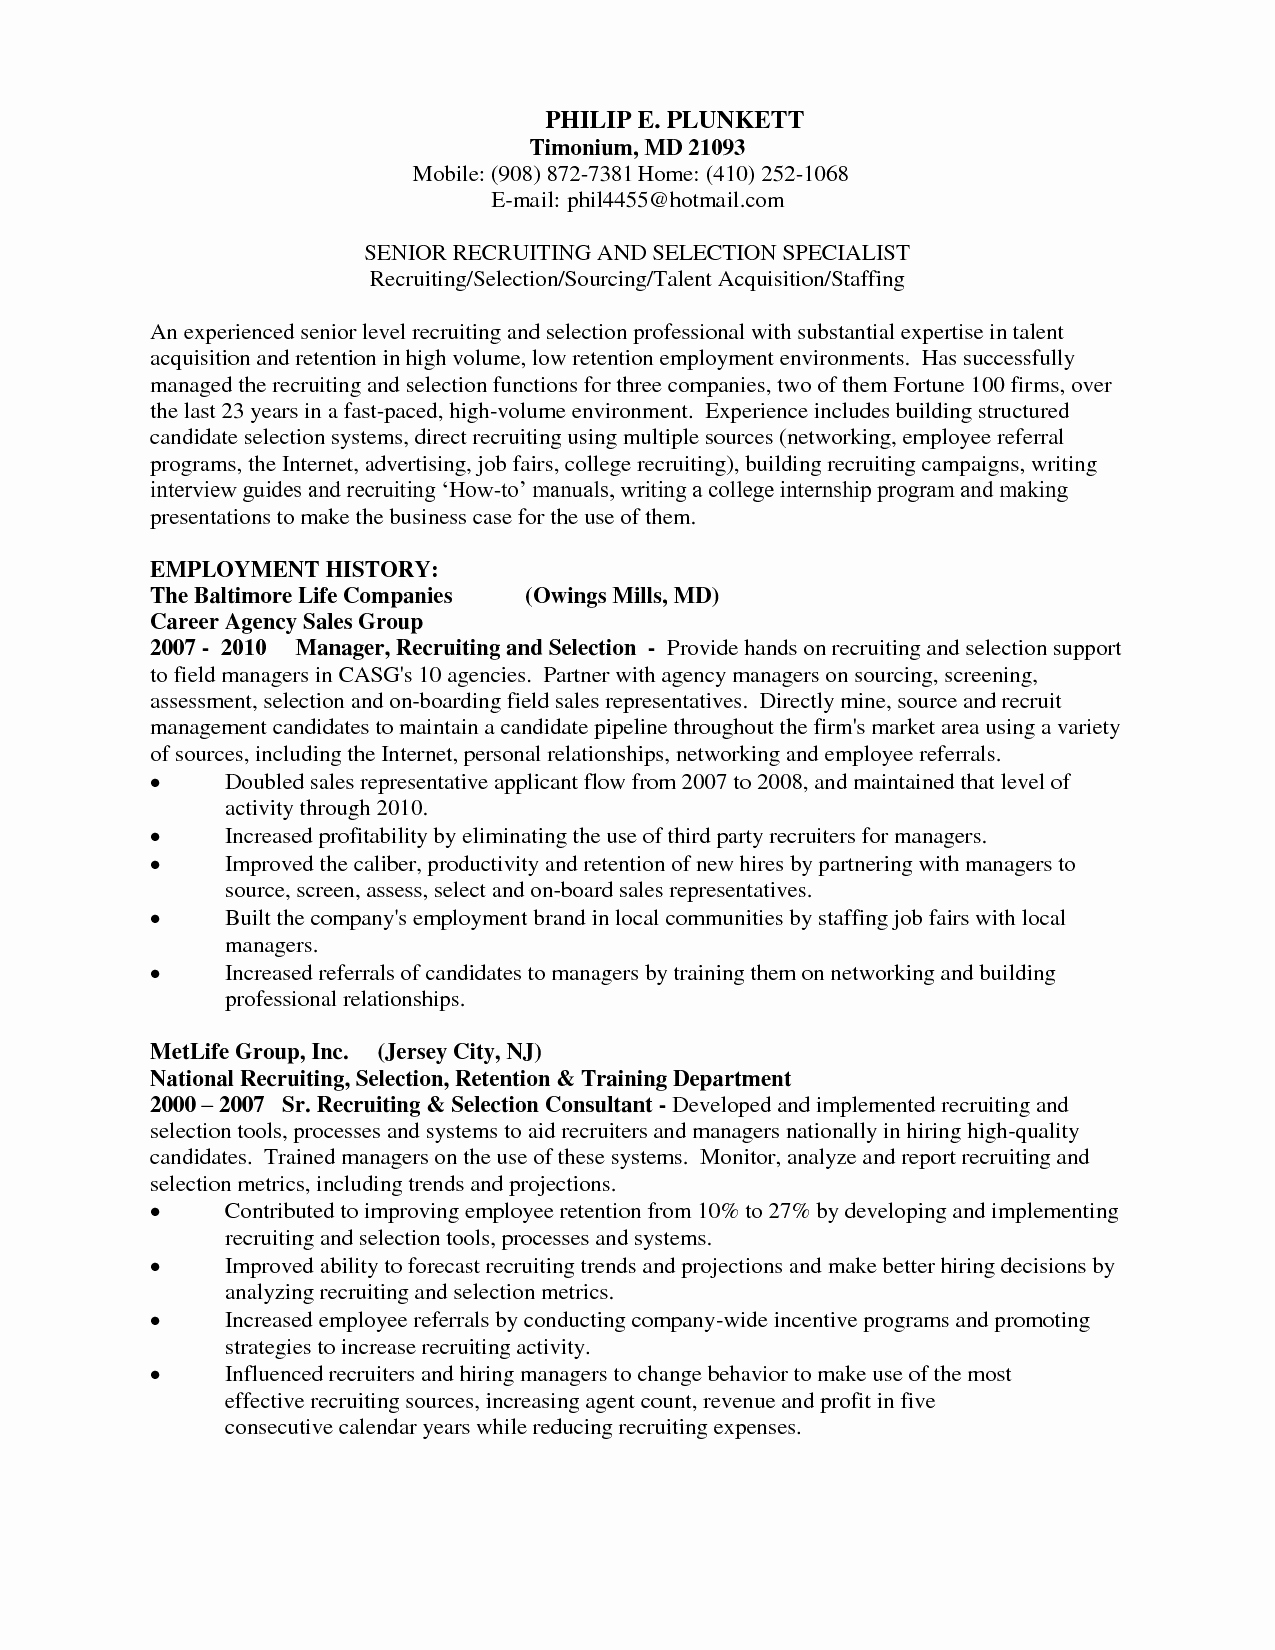 Information Technology Cover Letter Template - Information Technology Cover Letter Beautiful Service Level